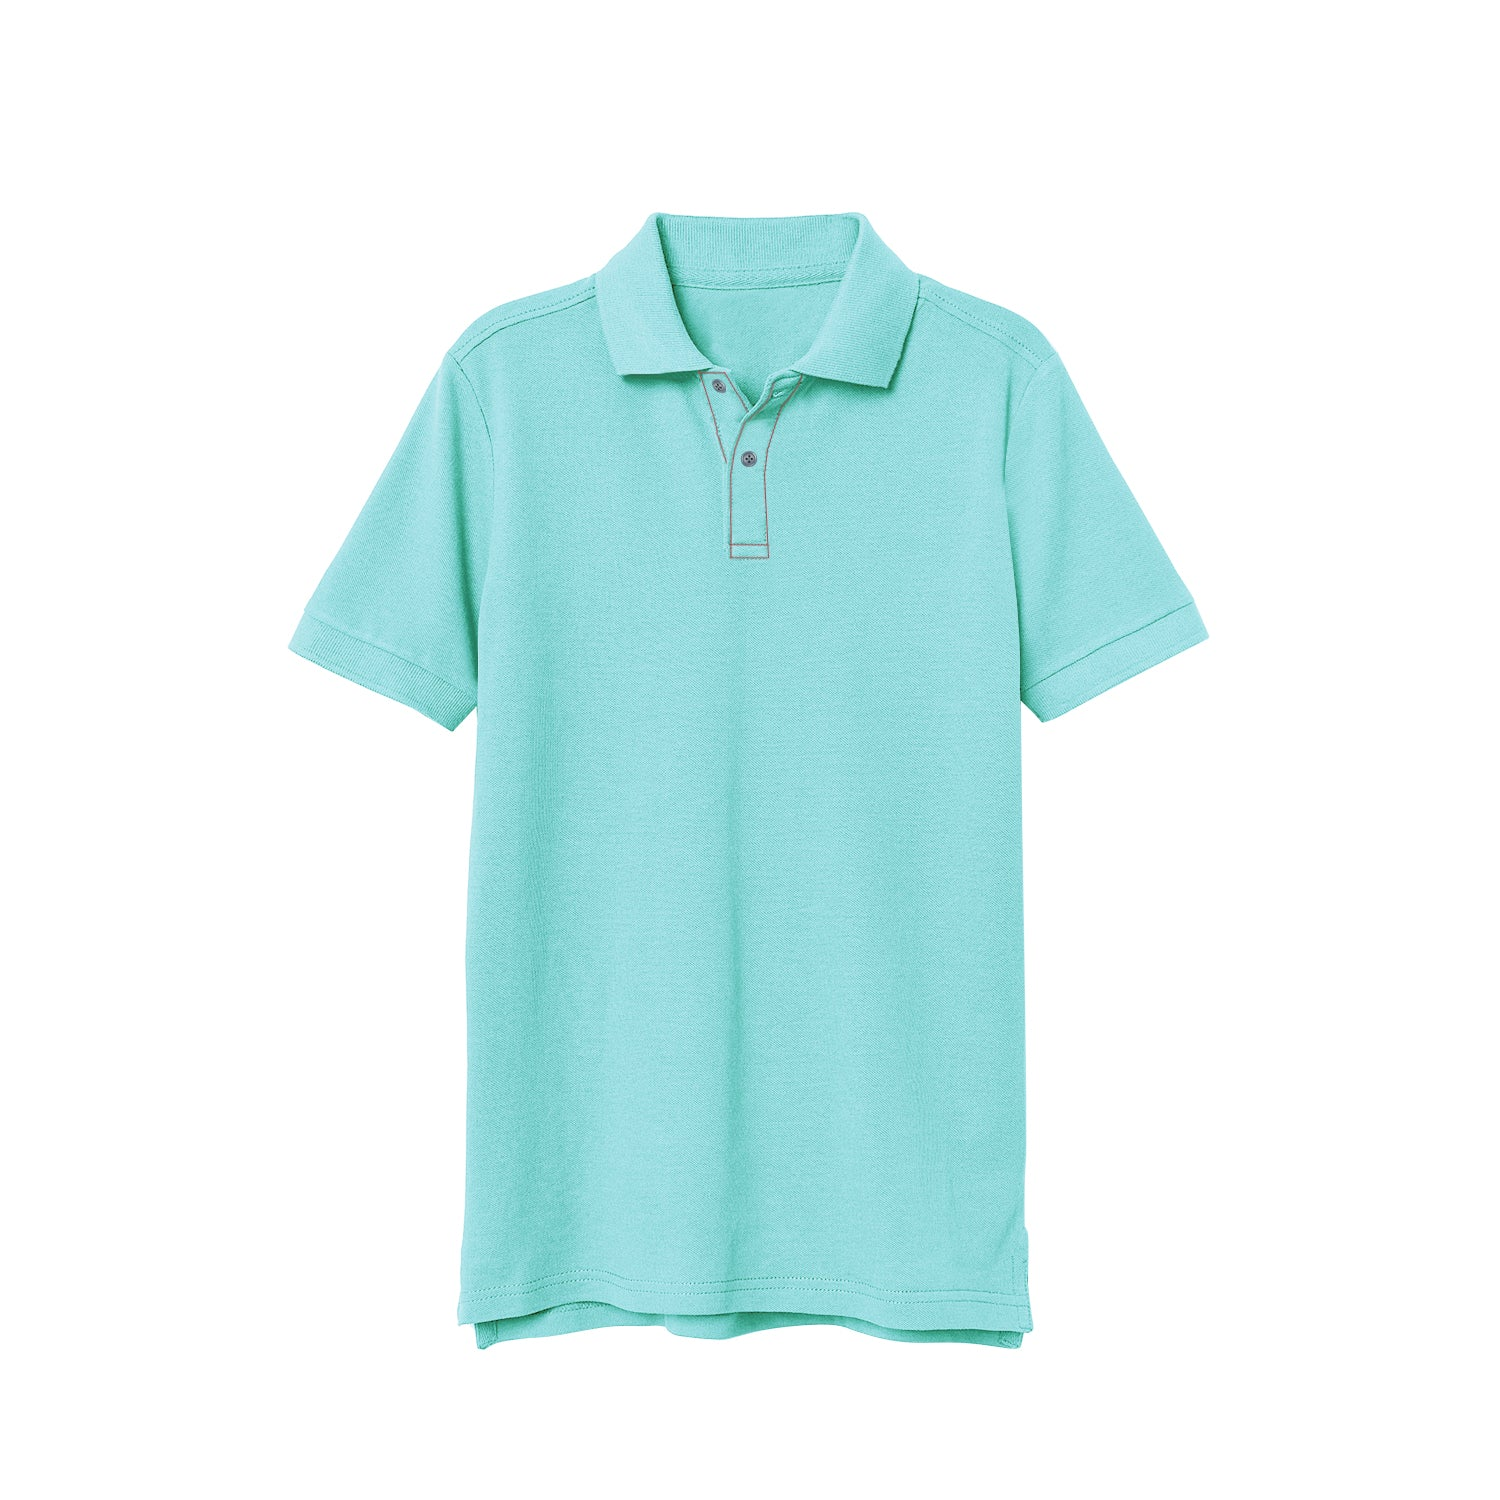 NEXT P.Q Polo Shirt For Kids-Cyan Green-BE9383